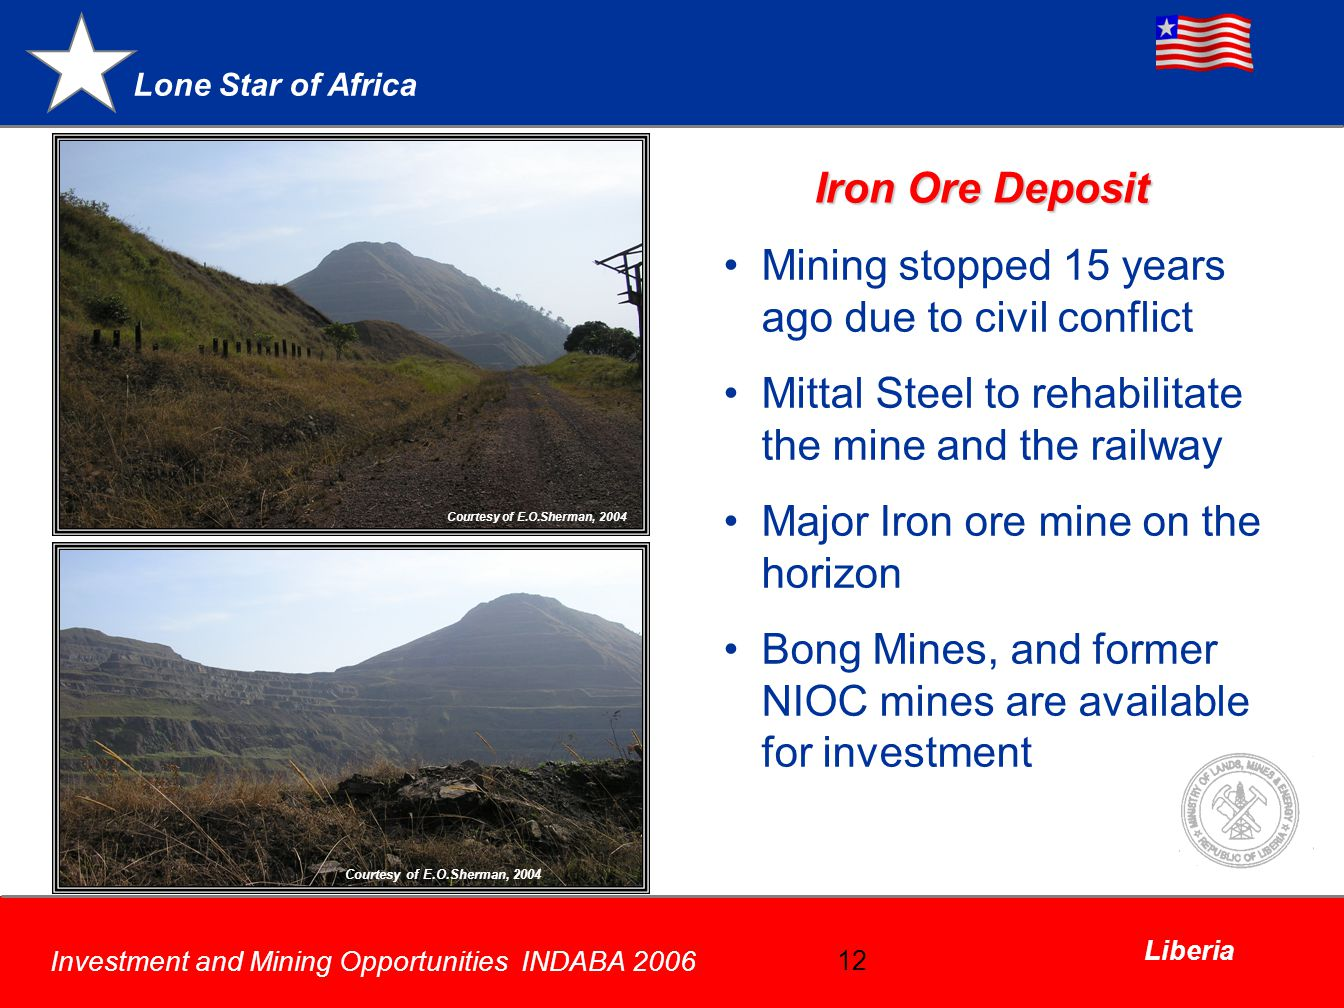 Mining stopped 15 years ago due to civil conflict